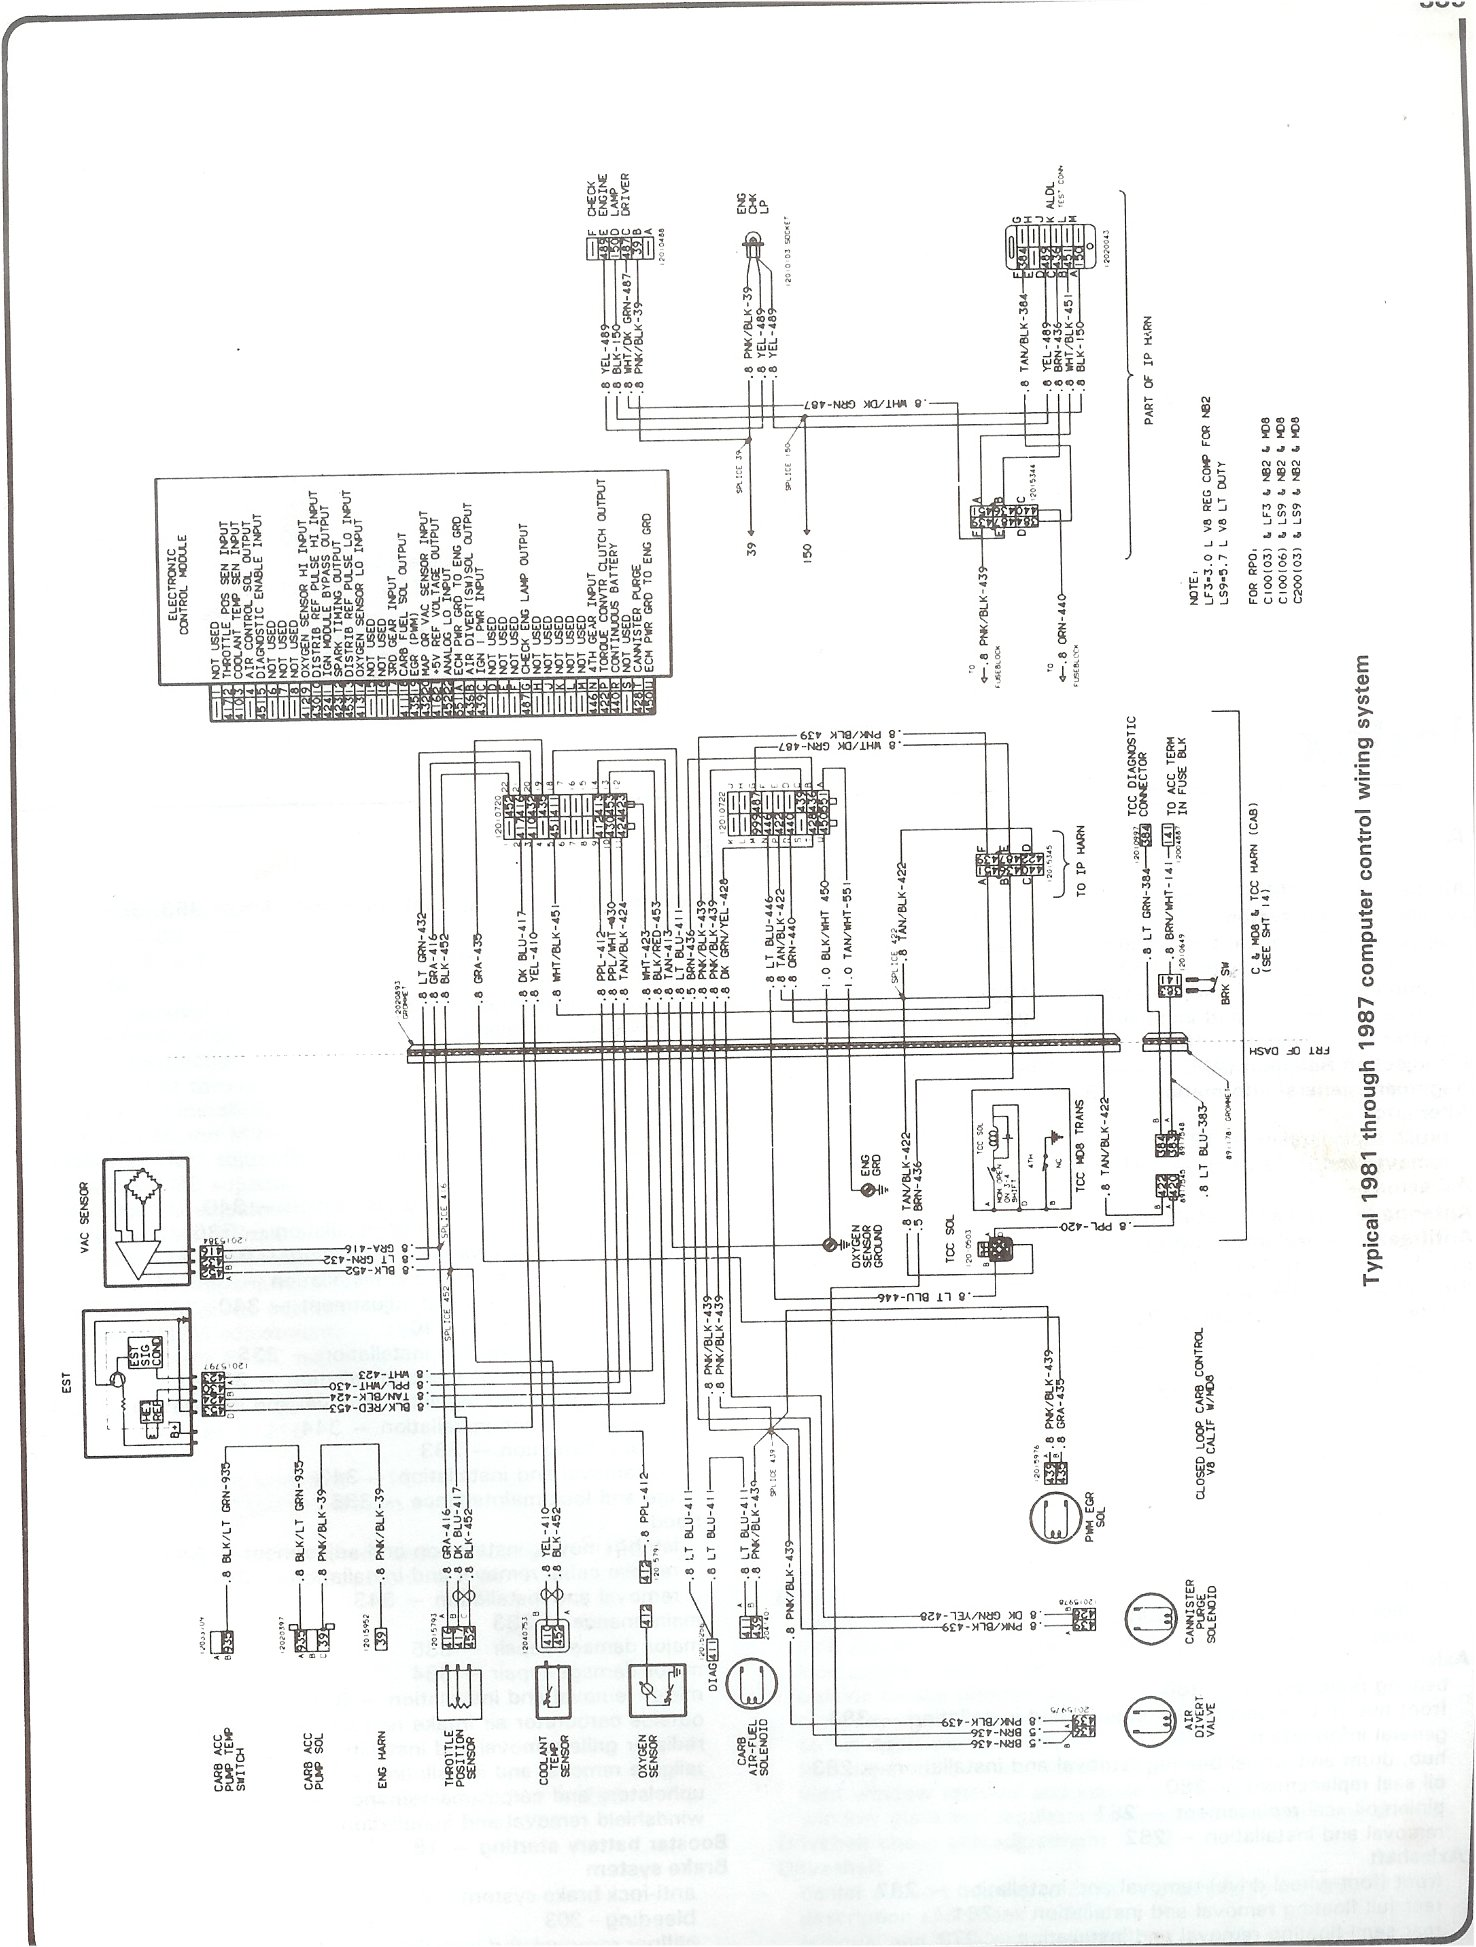 1986 gmc c15 wiring diagram electrical drawing wiring diagram complete 73 87 wiring diagrams rh forum 73 87chevytrucks com cat c15 ecm pin wiring diagram bsa c15 wiring diagram cheapraybanclubmaster Image collections